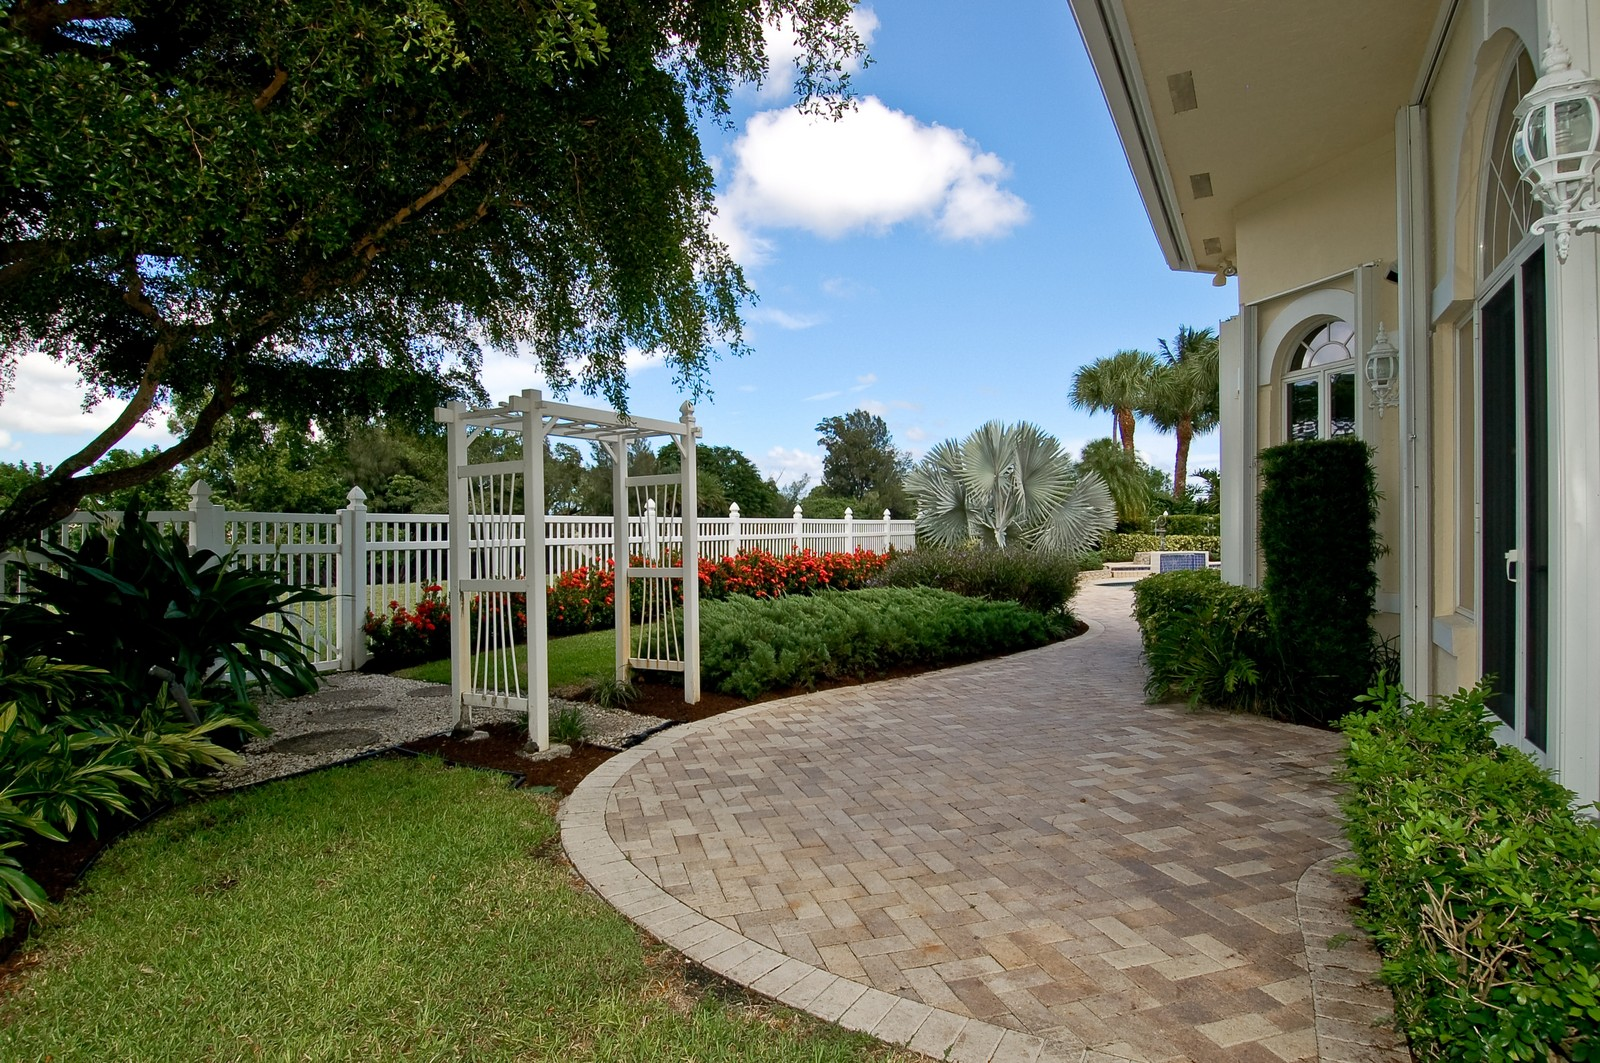 Real Estate Photography - 4252 Bocaire Blvd, Boca Raton, FL, 33487 - Back Yard